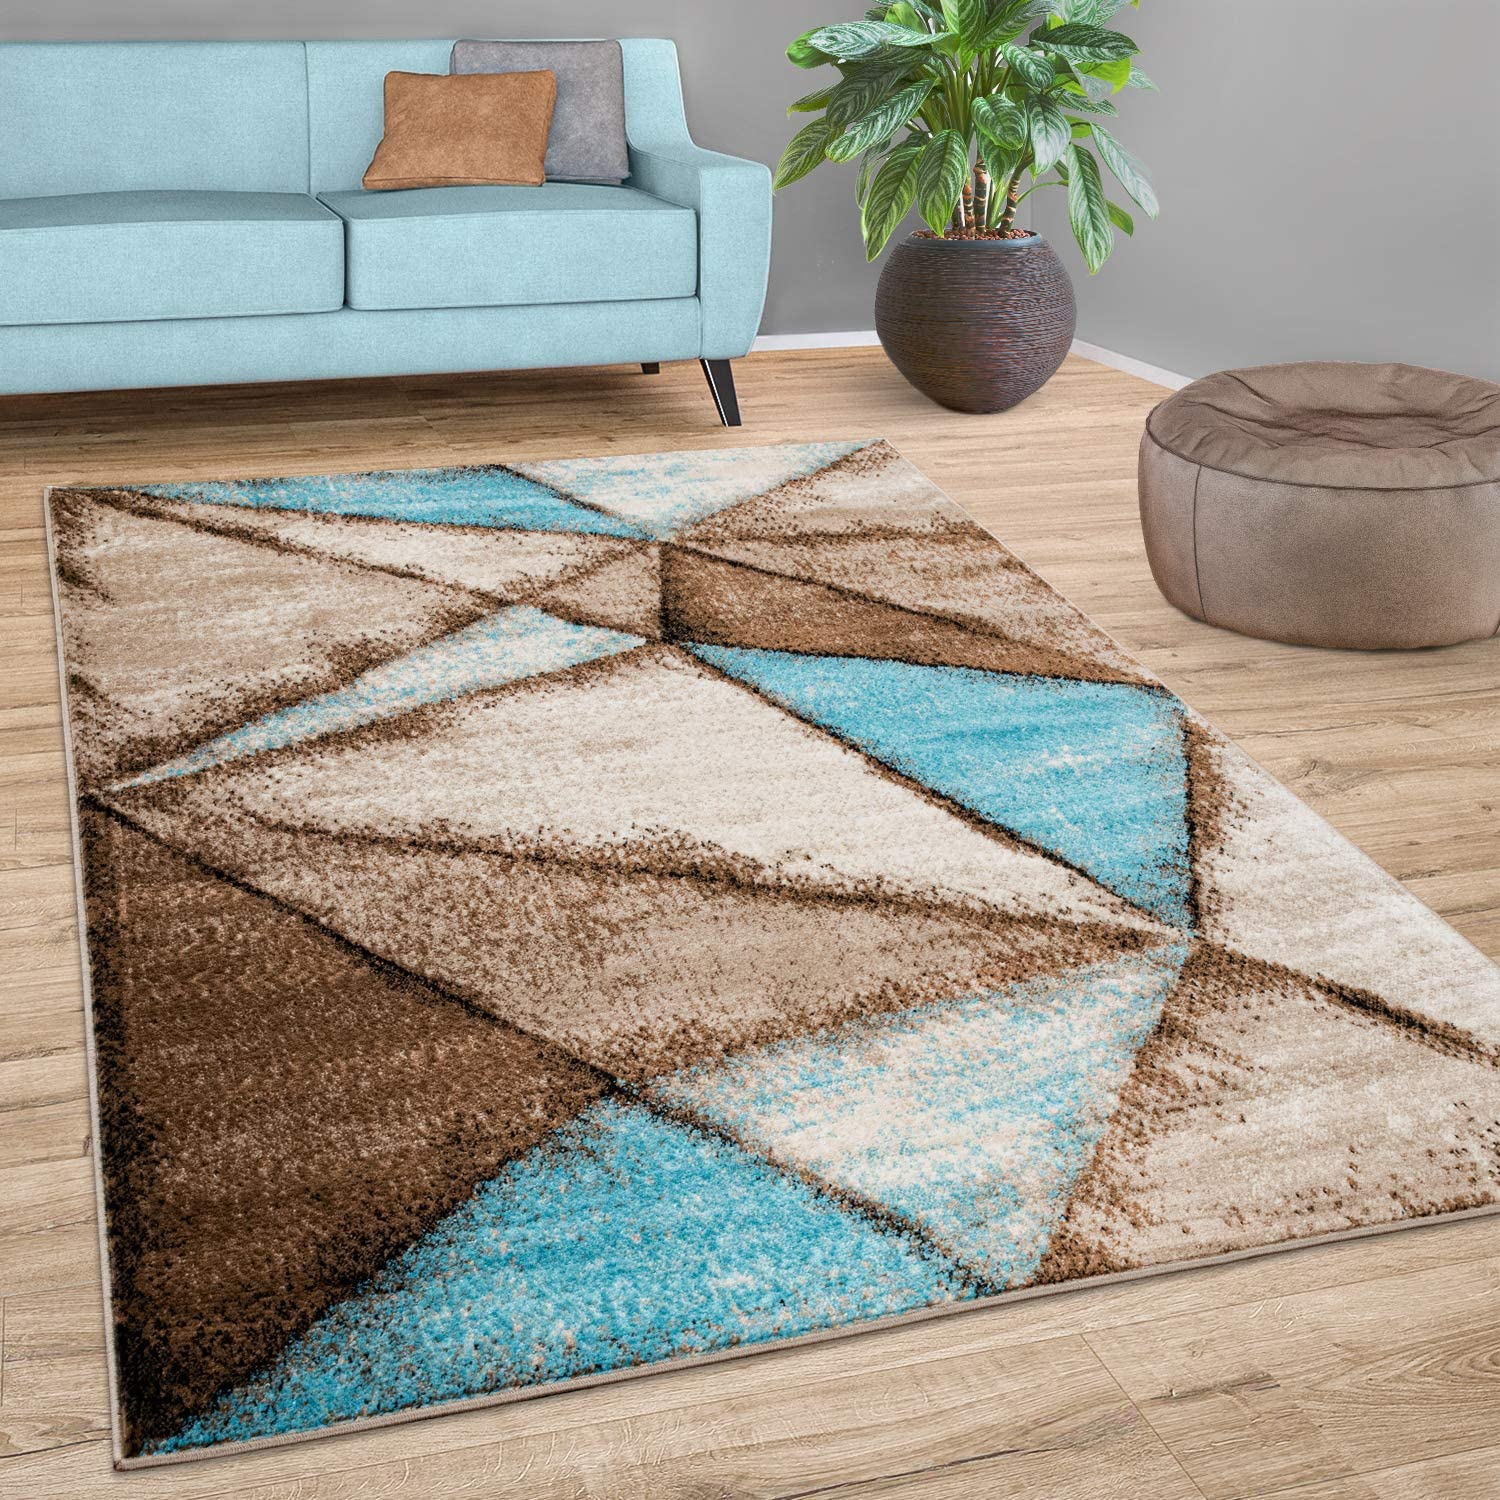 Area Rug Factory outlet for Living Room with Blue Geometric Beige in Max 83% OFF Br Pattern